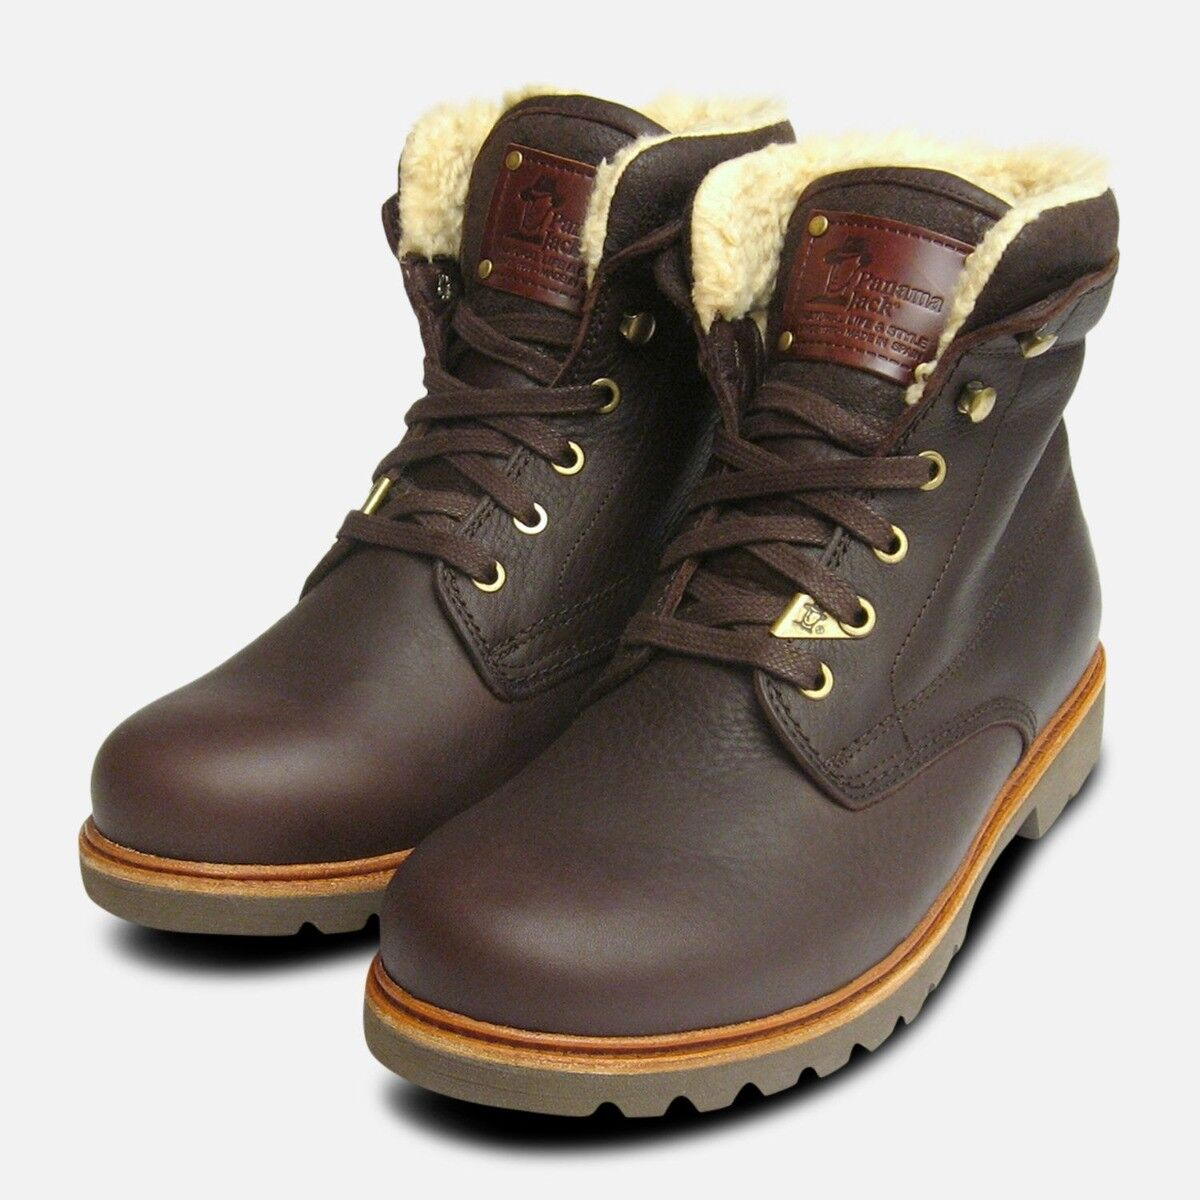 Havana Joe Mens Warm Lined Aviator Boots in Brown